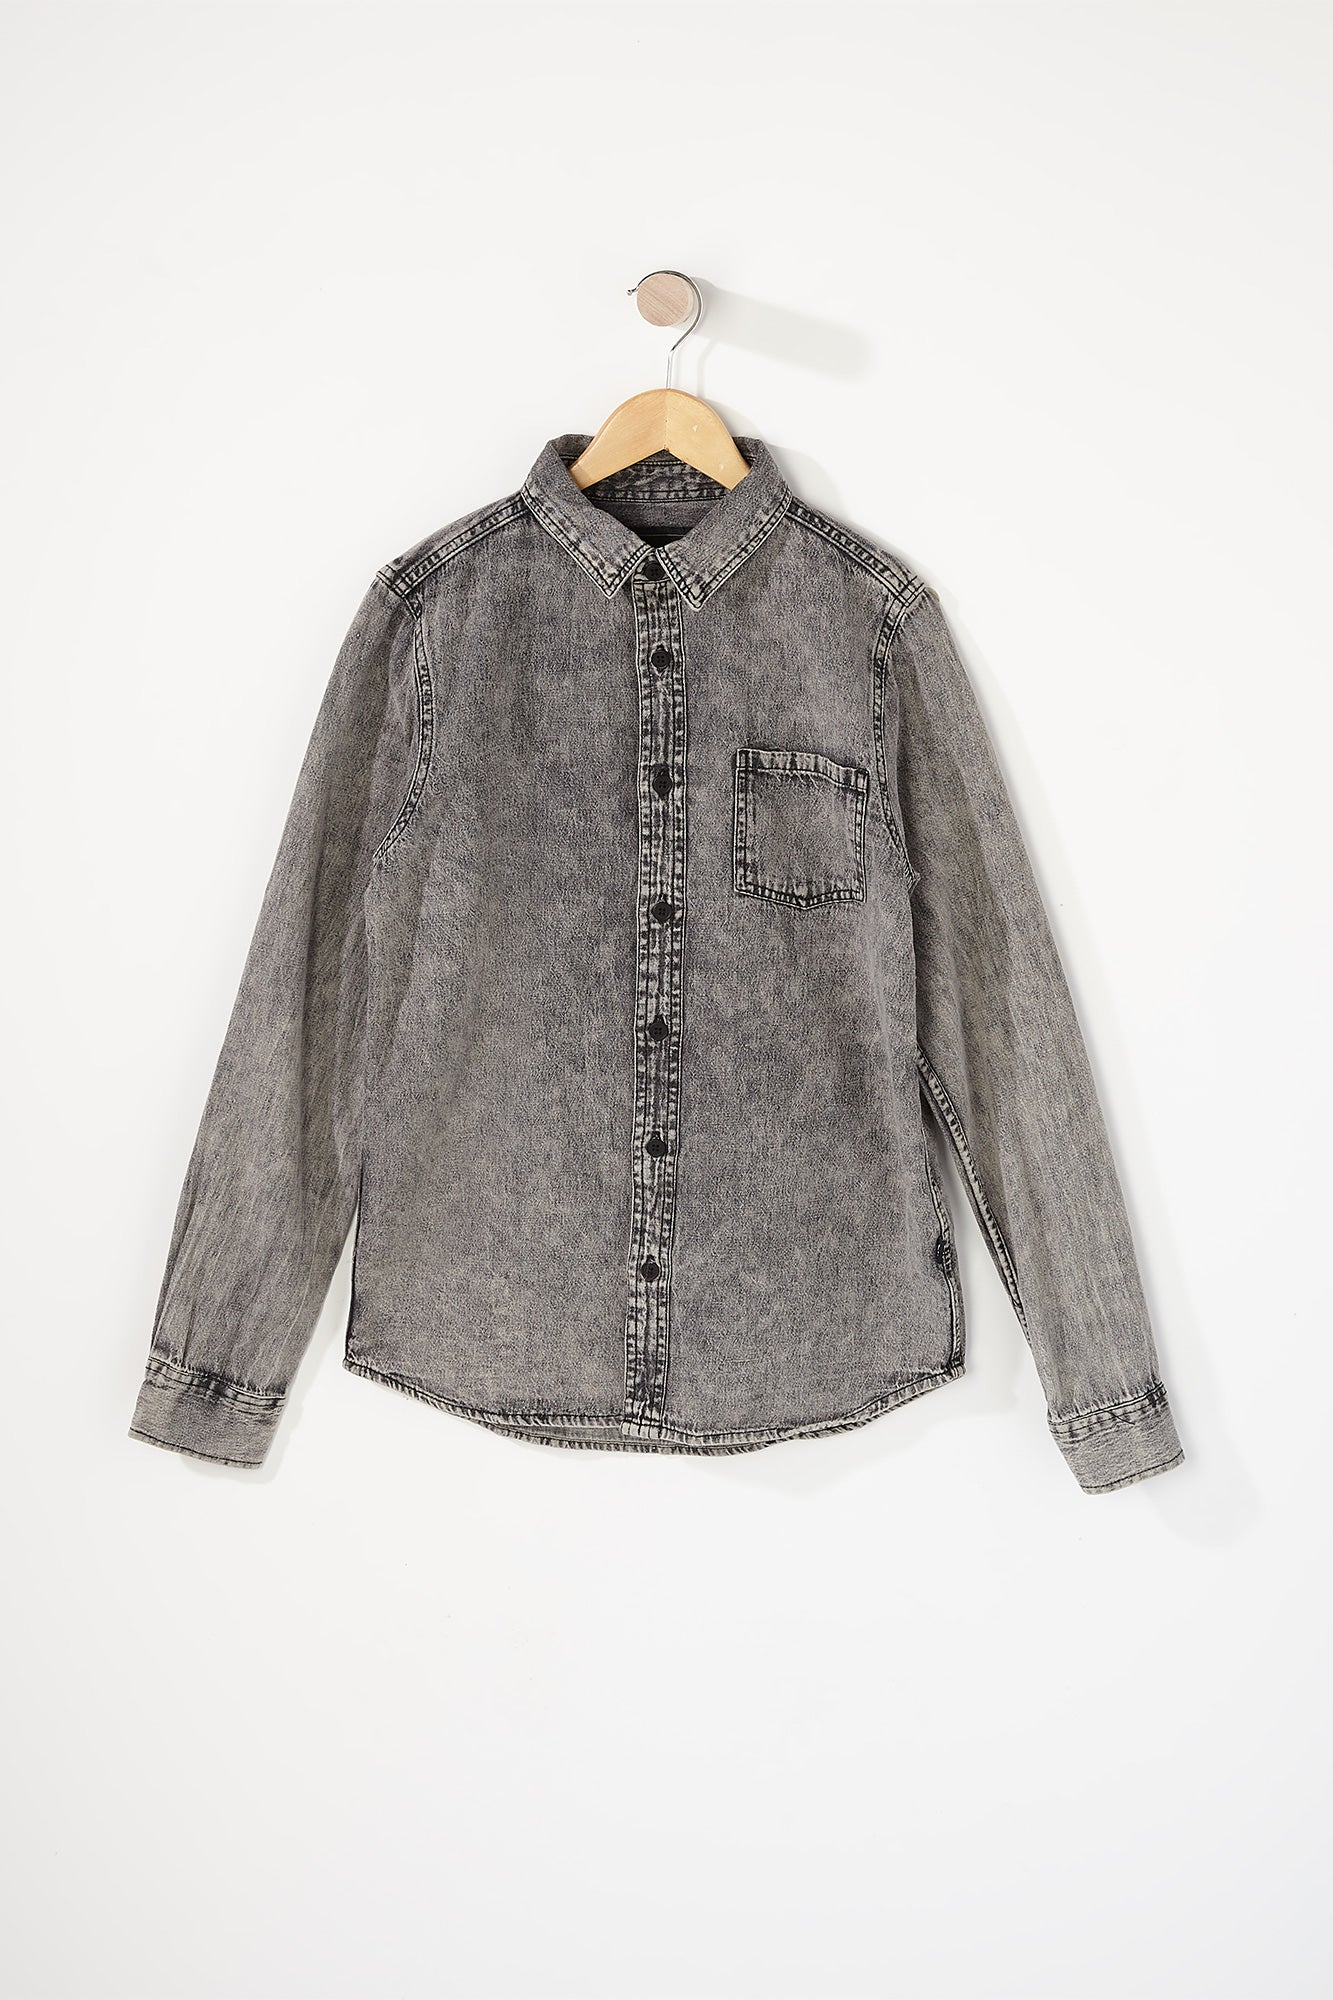 West49 Boys Denim Button-Up Shirt